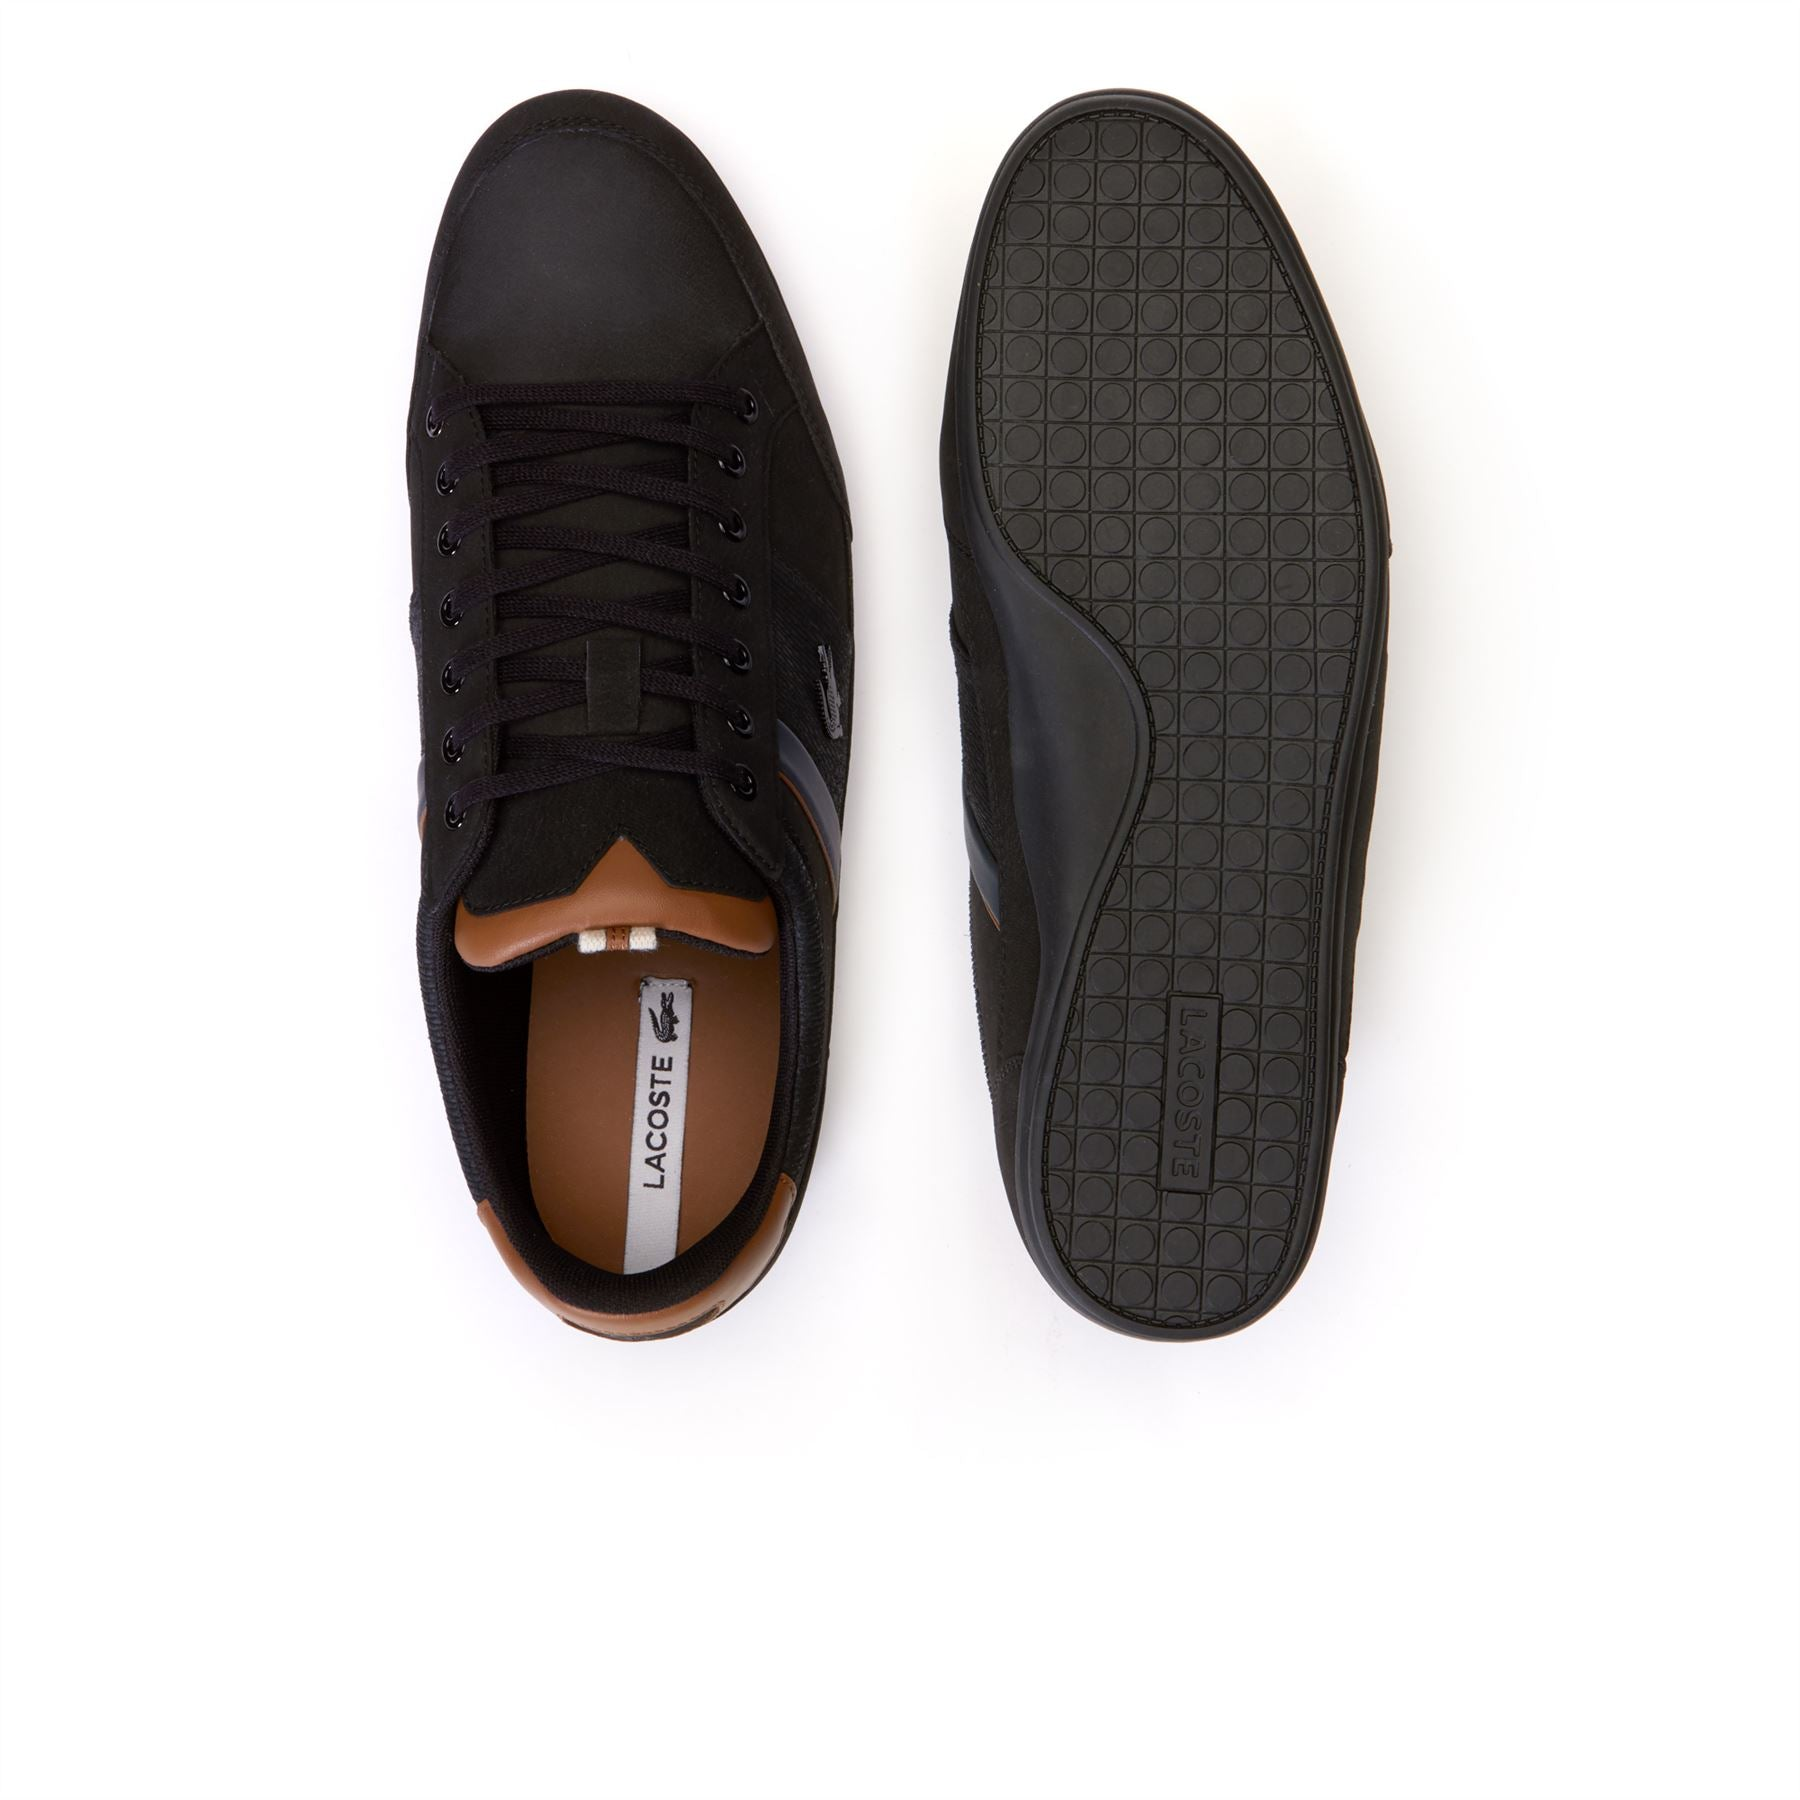 dfa7ab1d4c07f Lacoste Chaymon Nappa Leather   Suede Black Brown Trainers 36CAM0010094